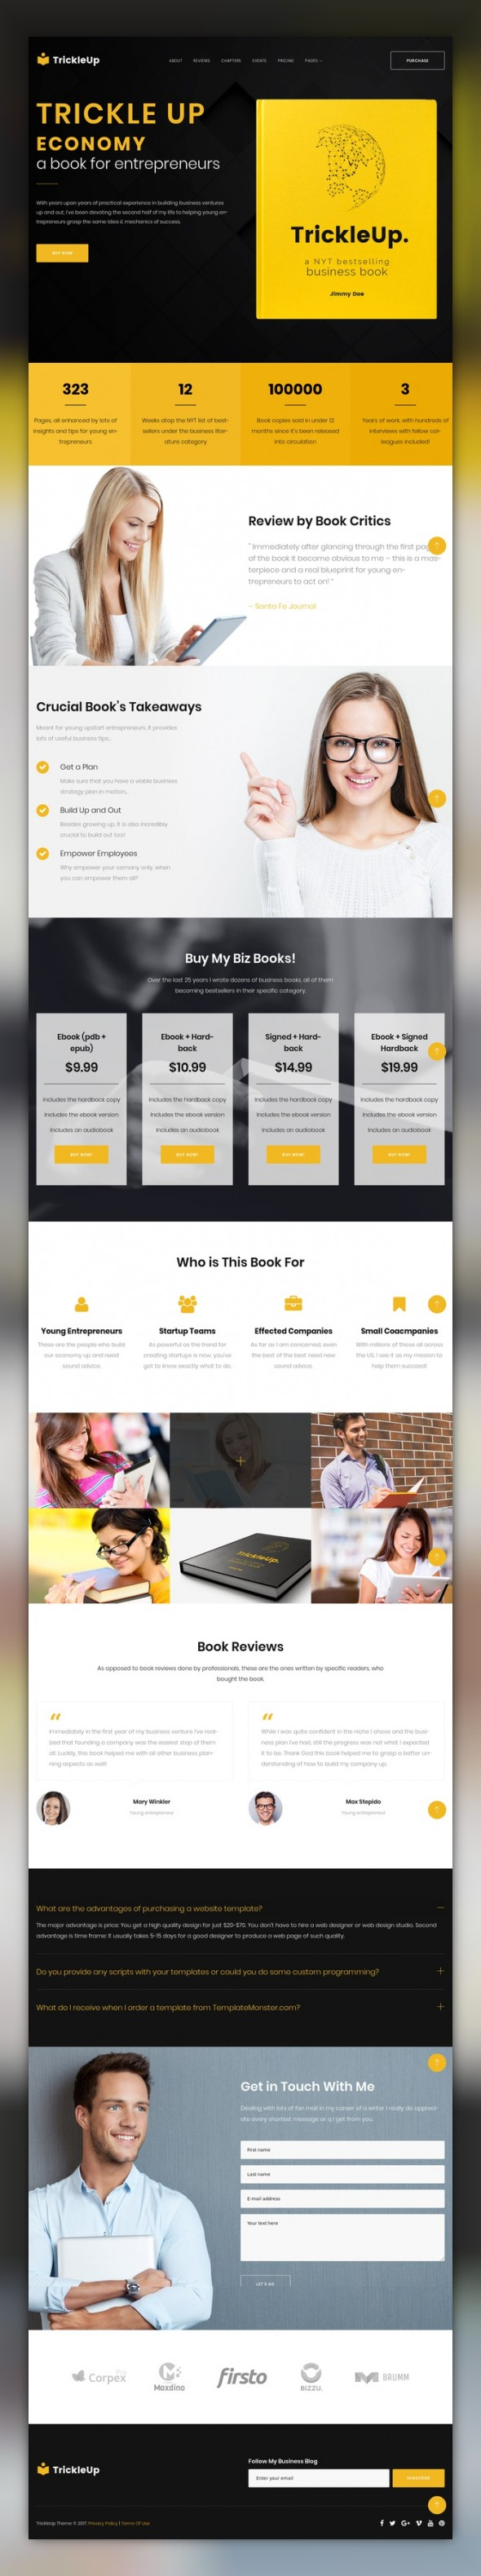 One Page E-book Landing WordPress Theme CMS & Blog Templates ...